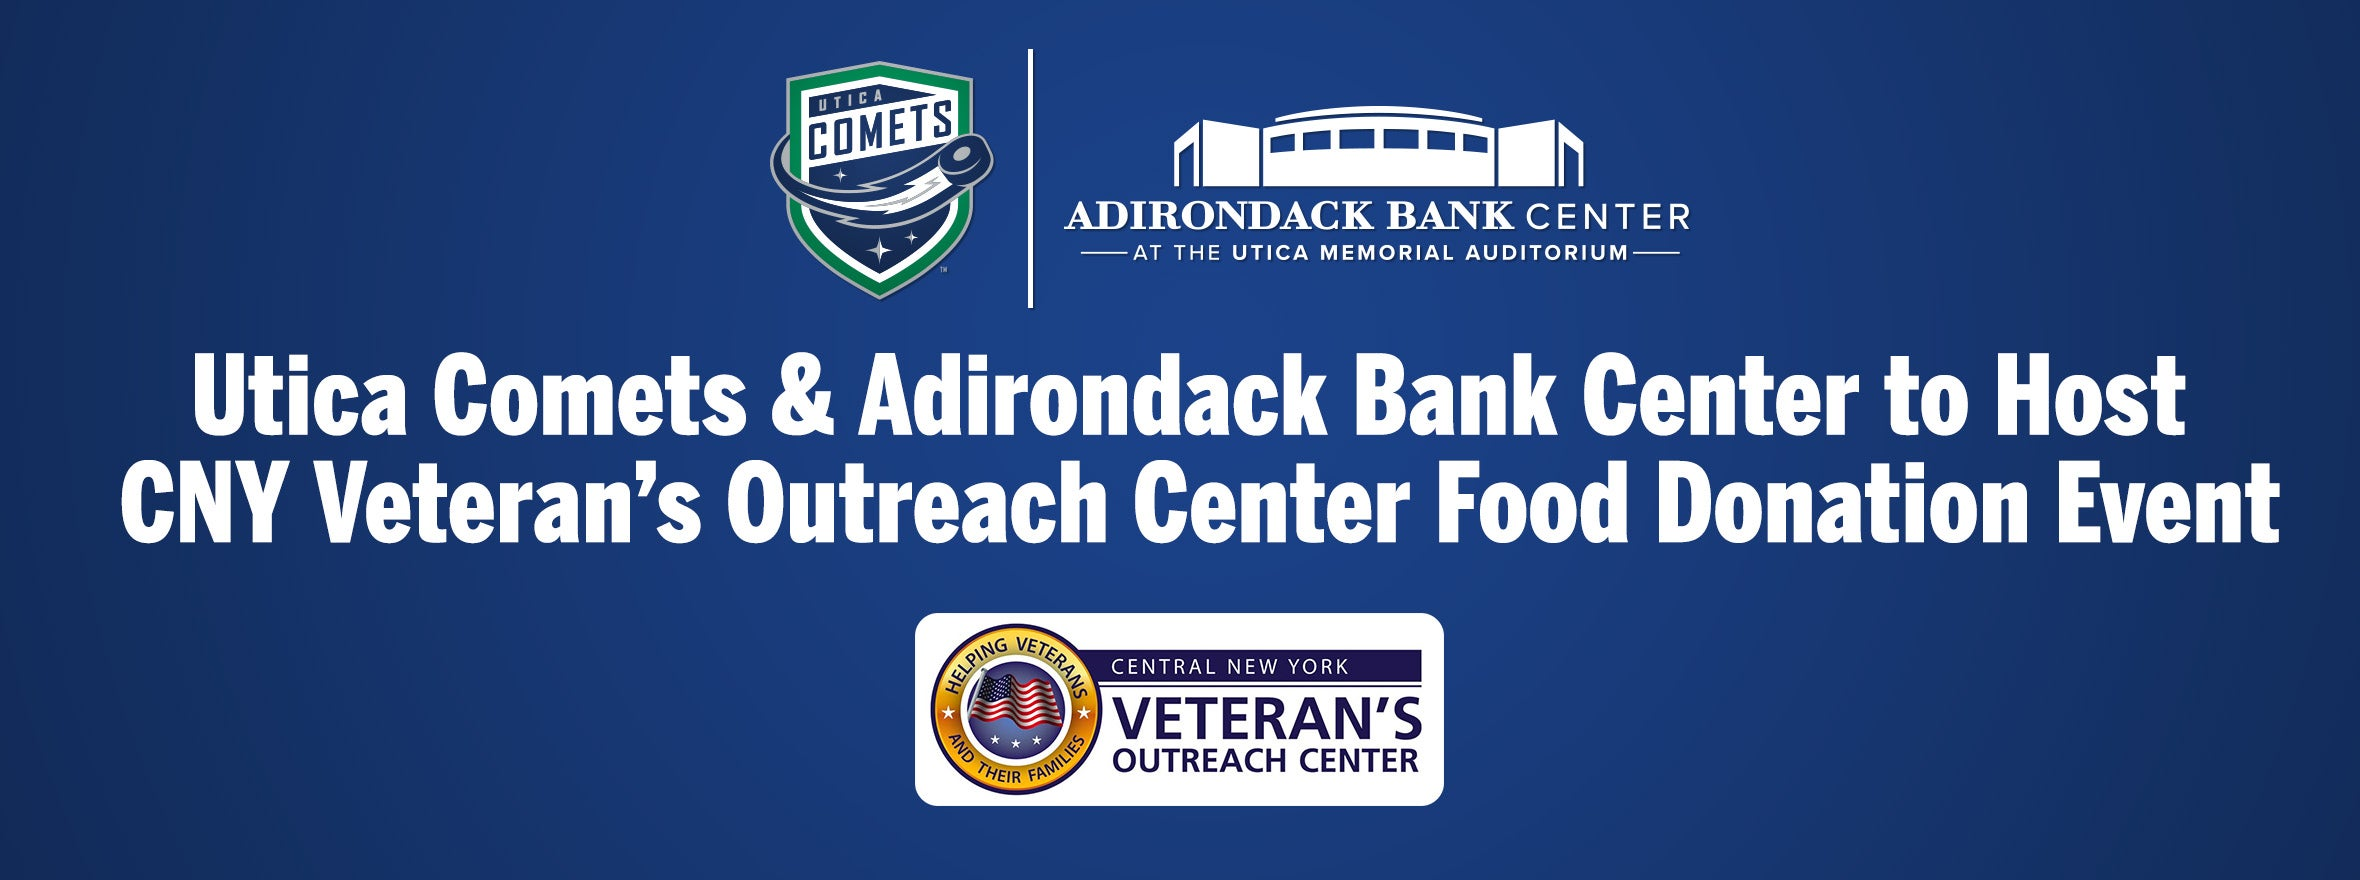 COMETS AND ADIRONDACK BANK CENTER TO HOST CNY VETERAN'S OUTREACH CENTER FOOD DONATION EVENT